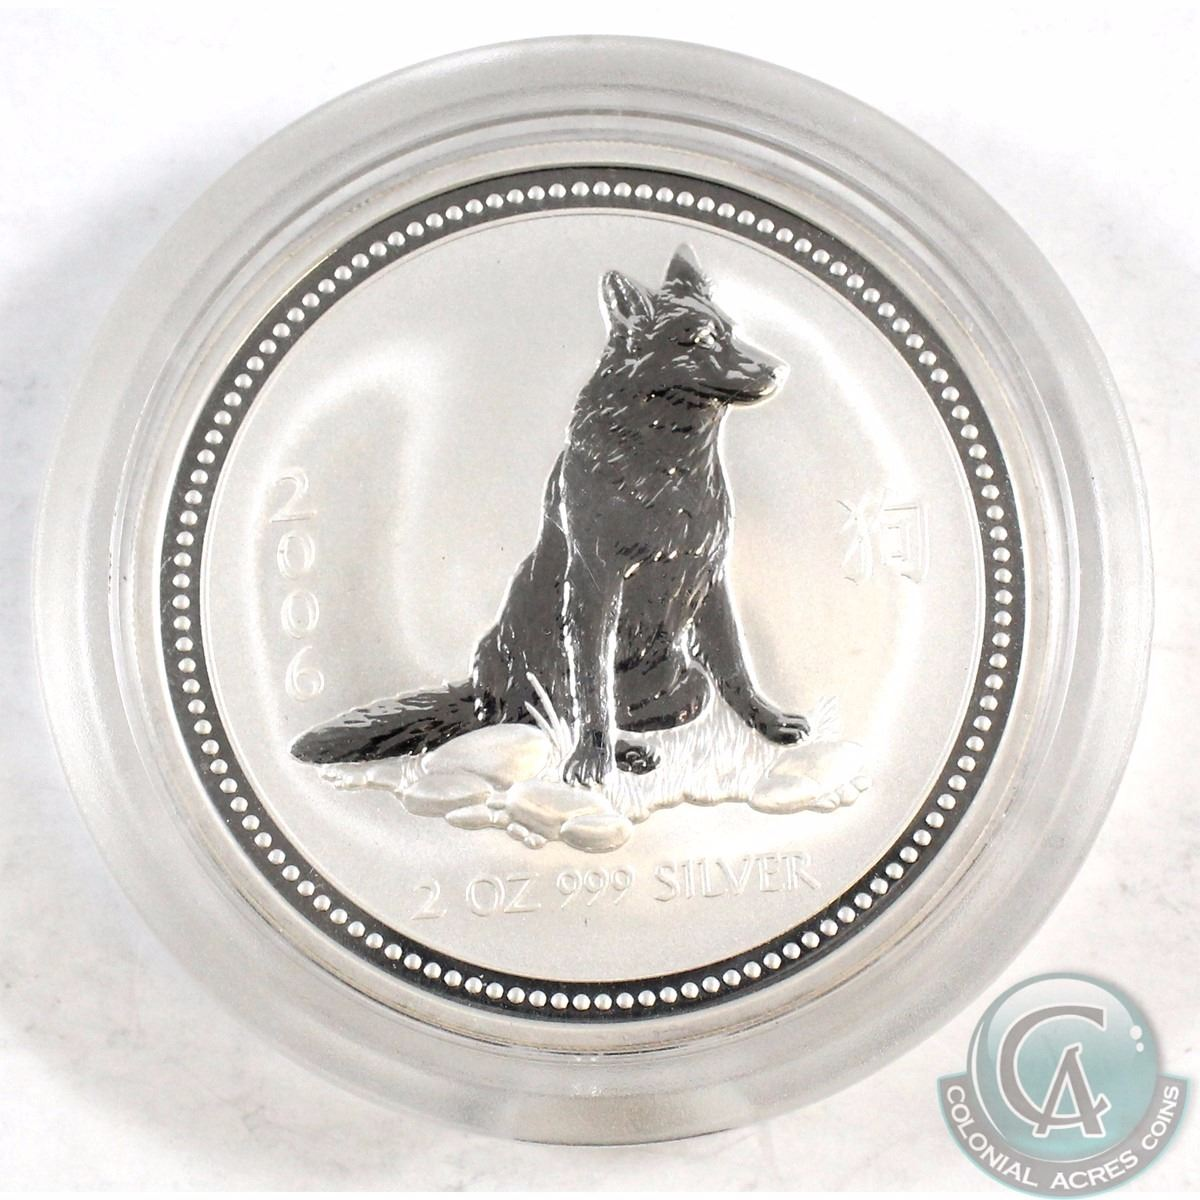 2006 Australia $2 Year of the Dog 2oz Fine Silver Coin in Capsule  RARE  coin with mintage of only 17